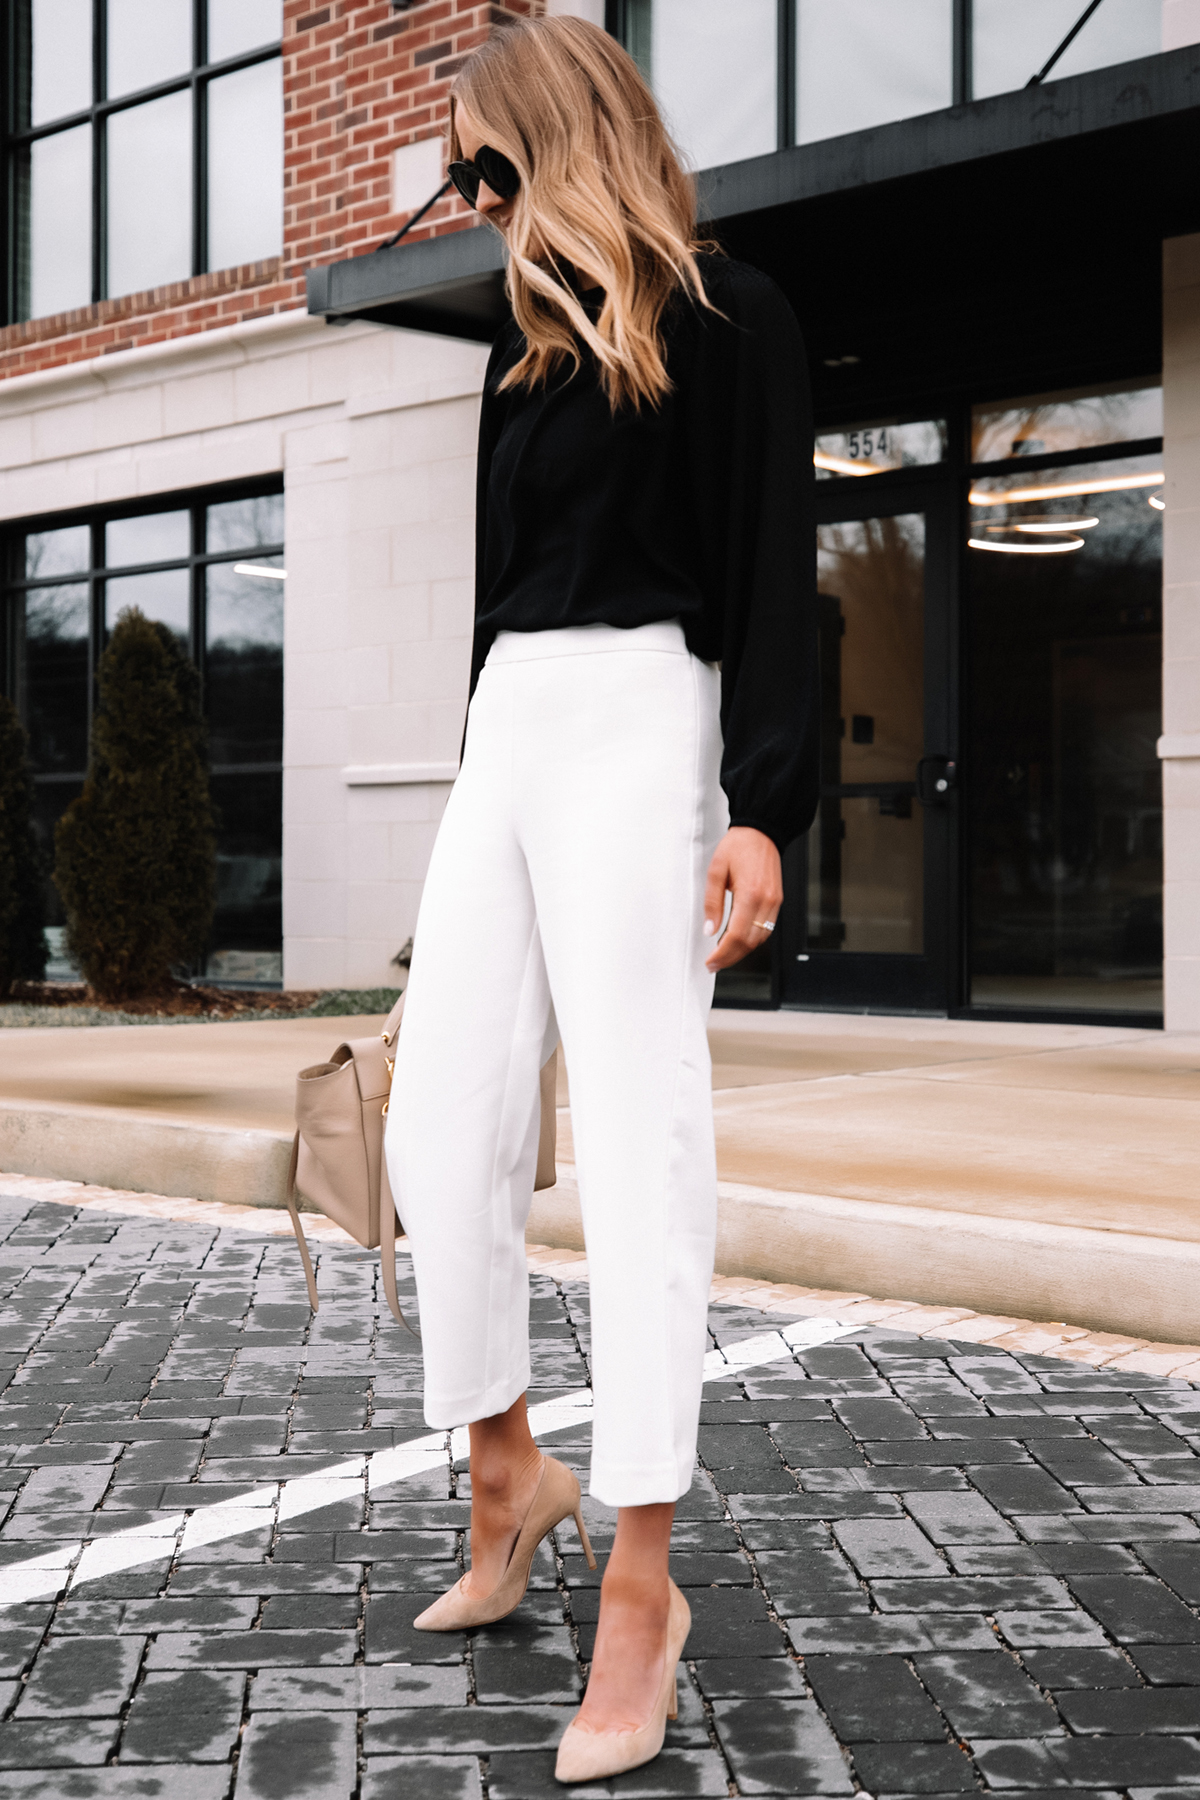 Fashion Jackson Wearing Black Blouse White Pants Beige Pumps Workwear Outfit 6